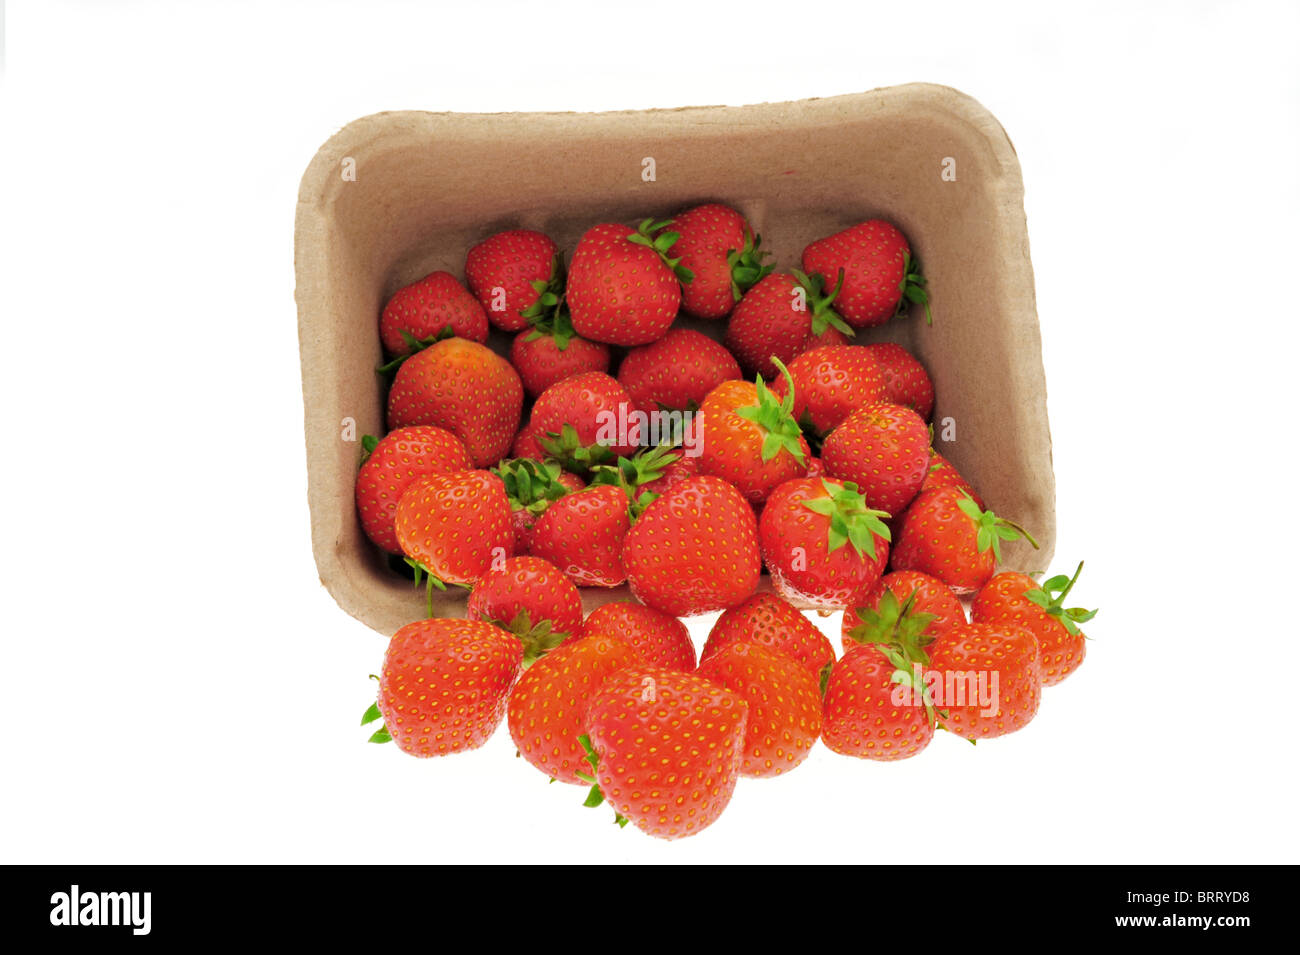 High key image of strawberries falling out of a punnet - Stock Image